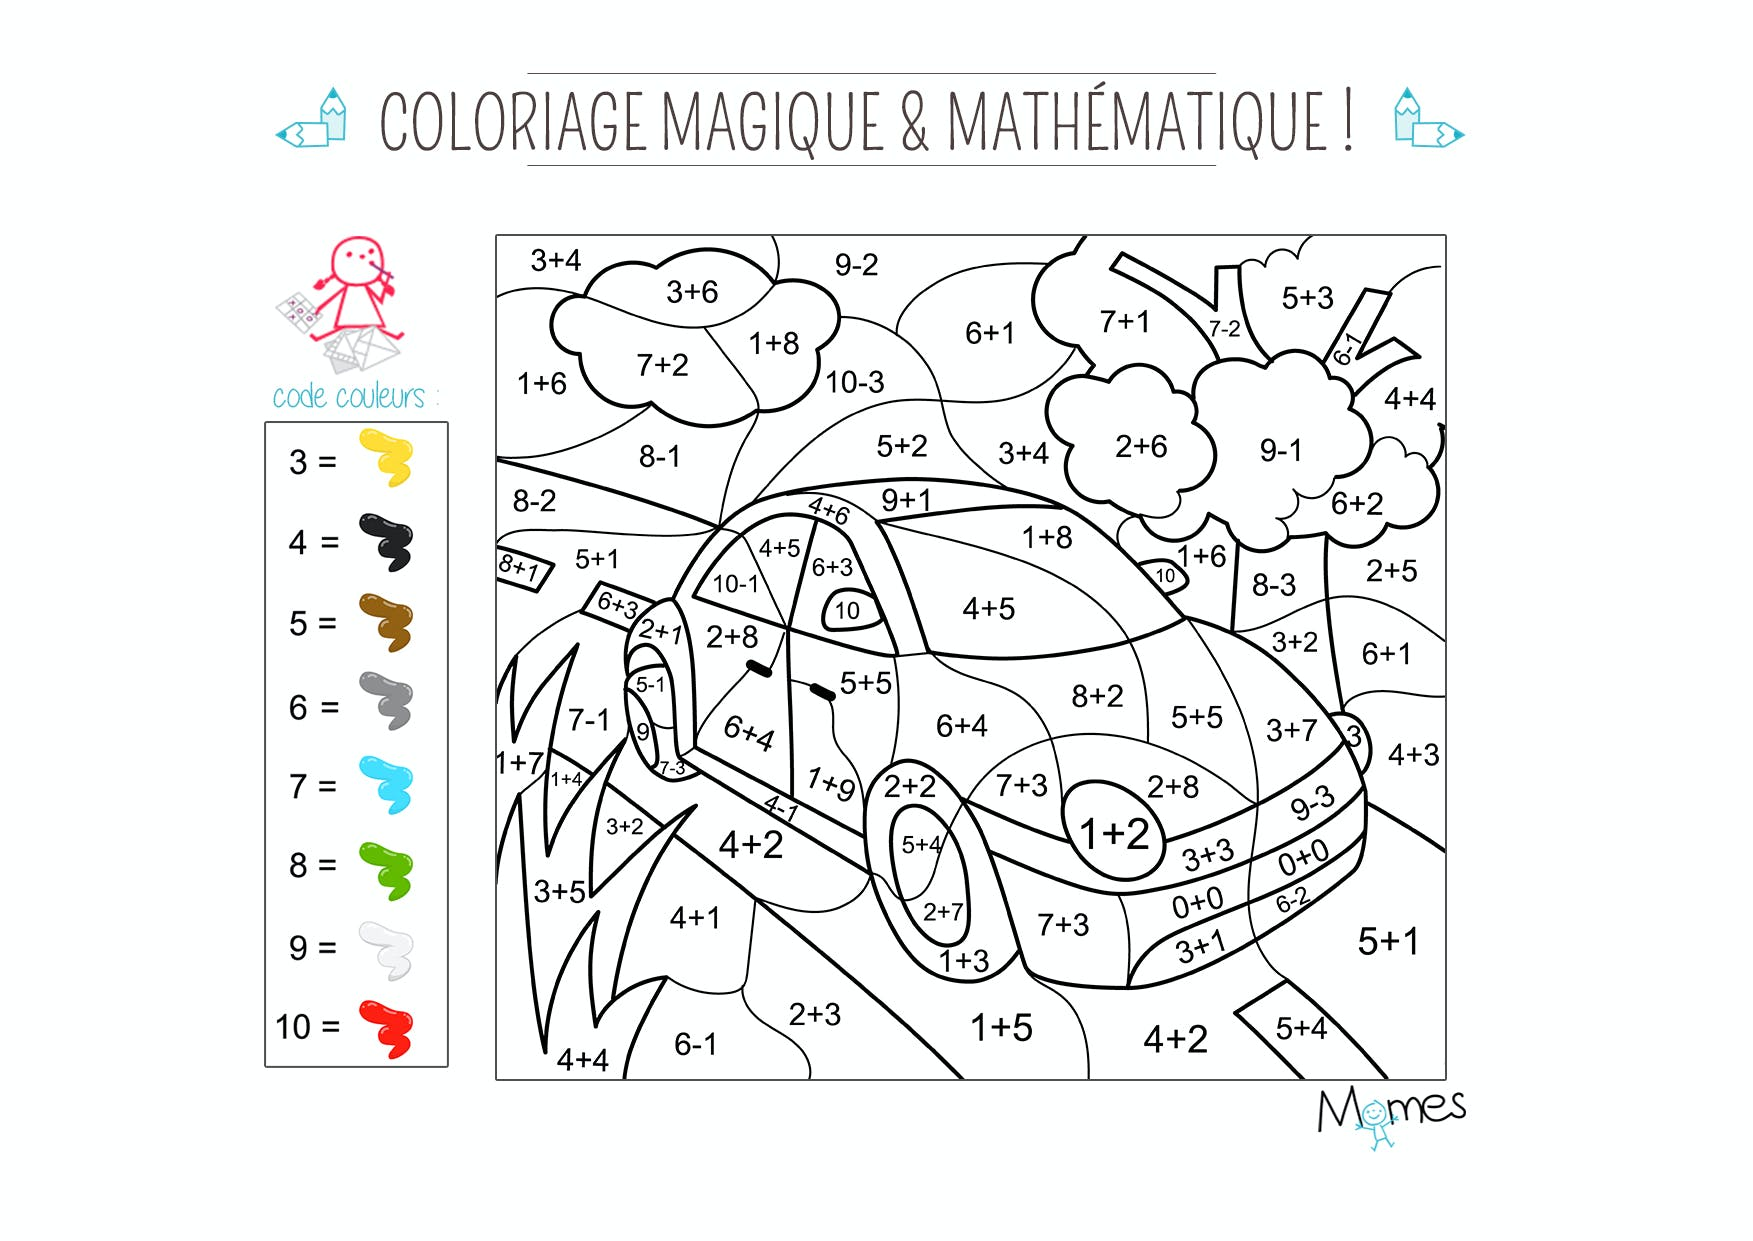 coloriage magique et math matique la voiture momes net coloriage magique de voiture l. Black Bedroom Furniture Sets. Home Design Ideas